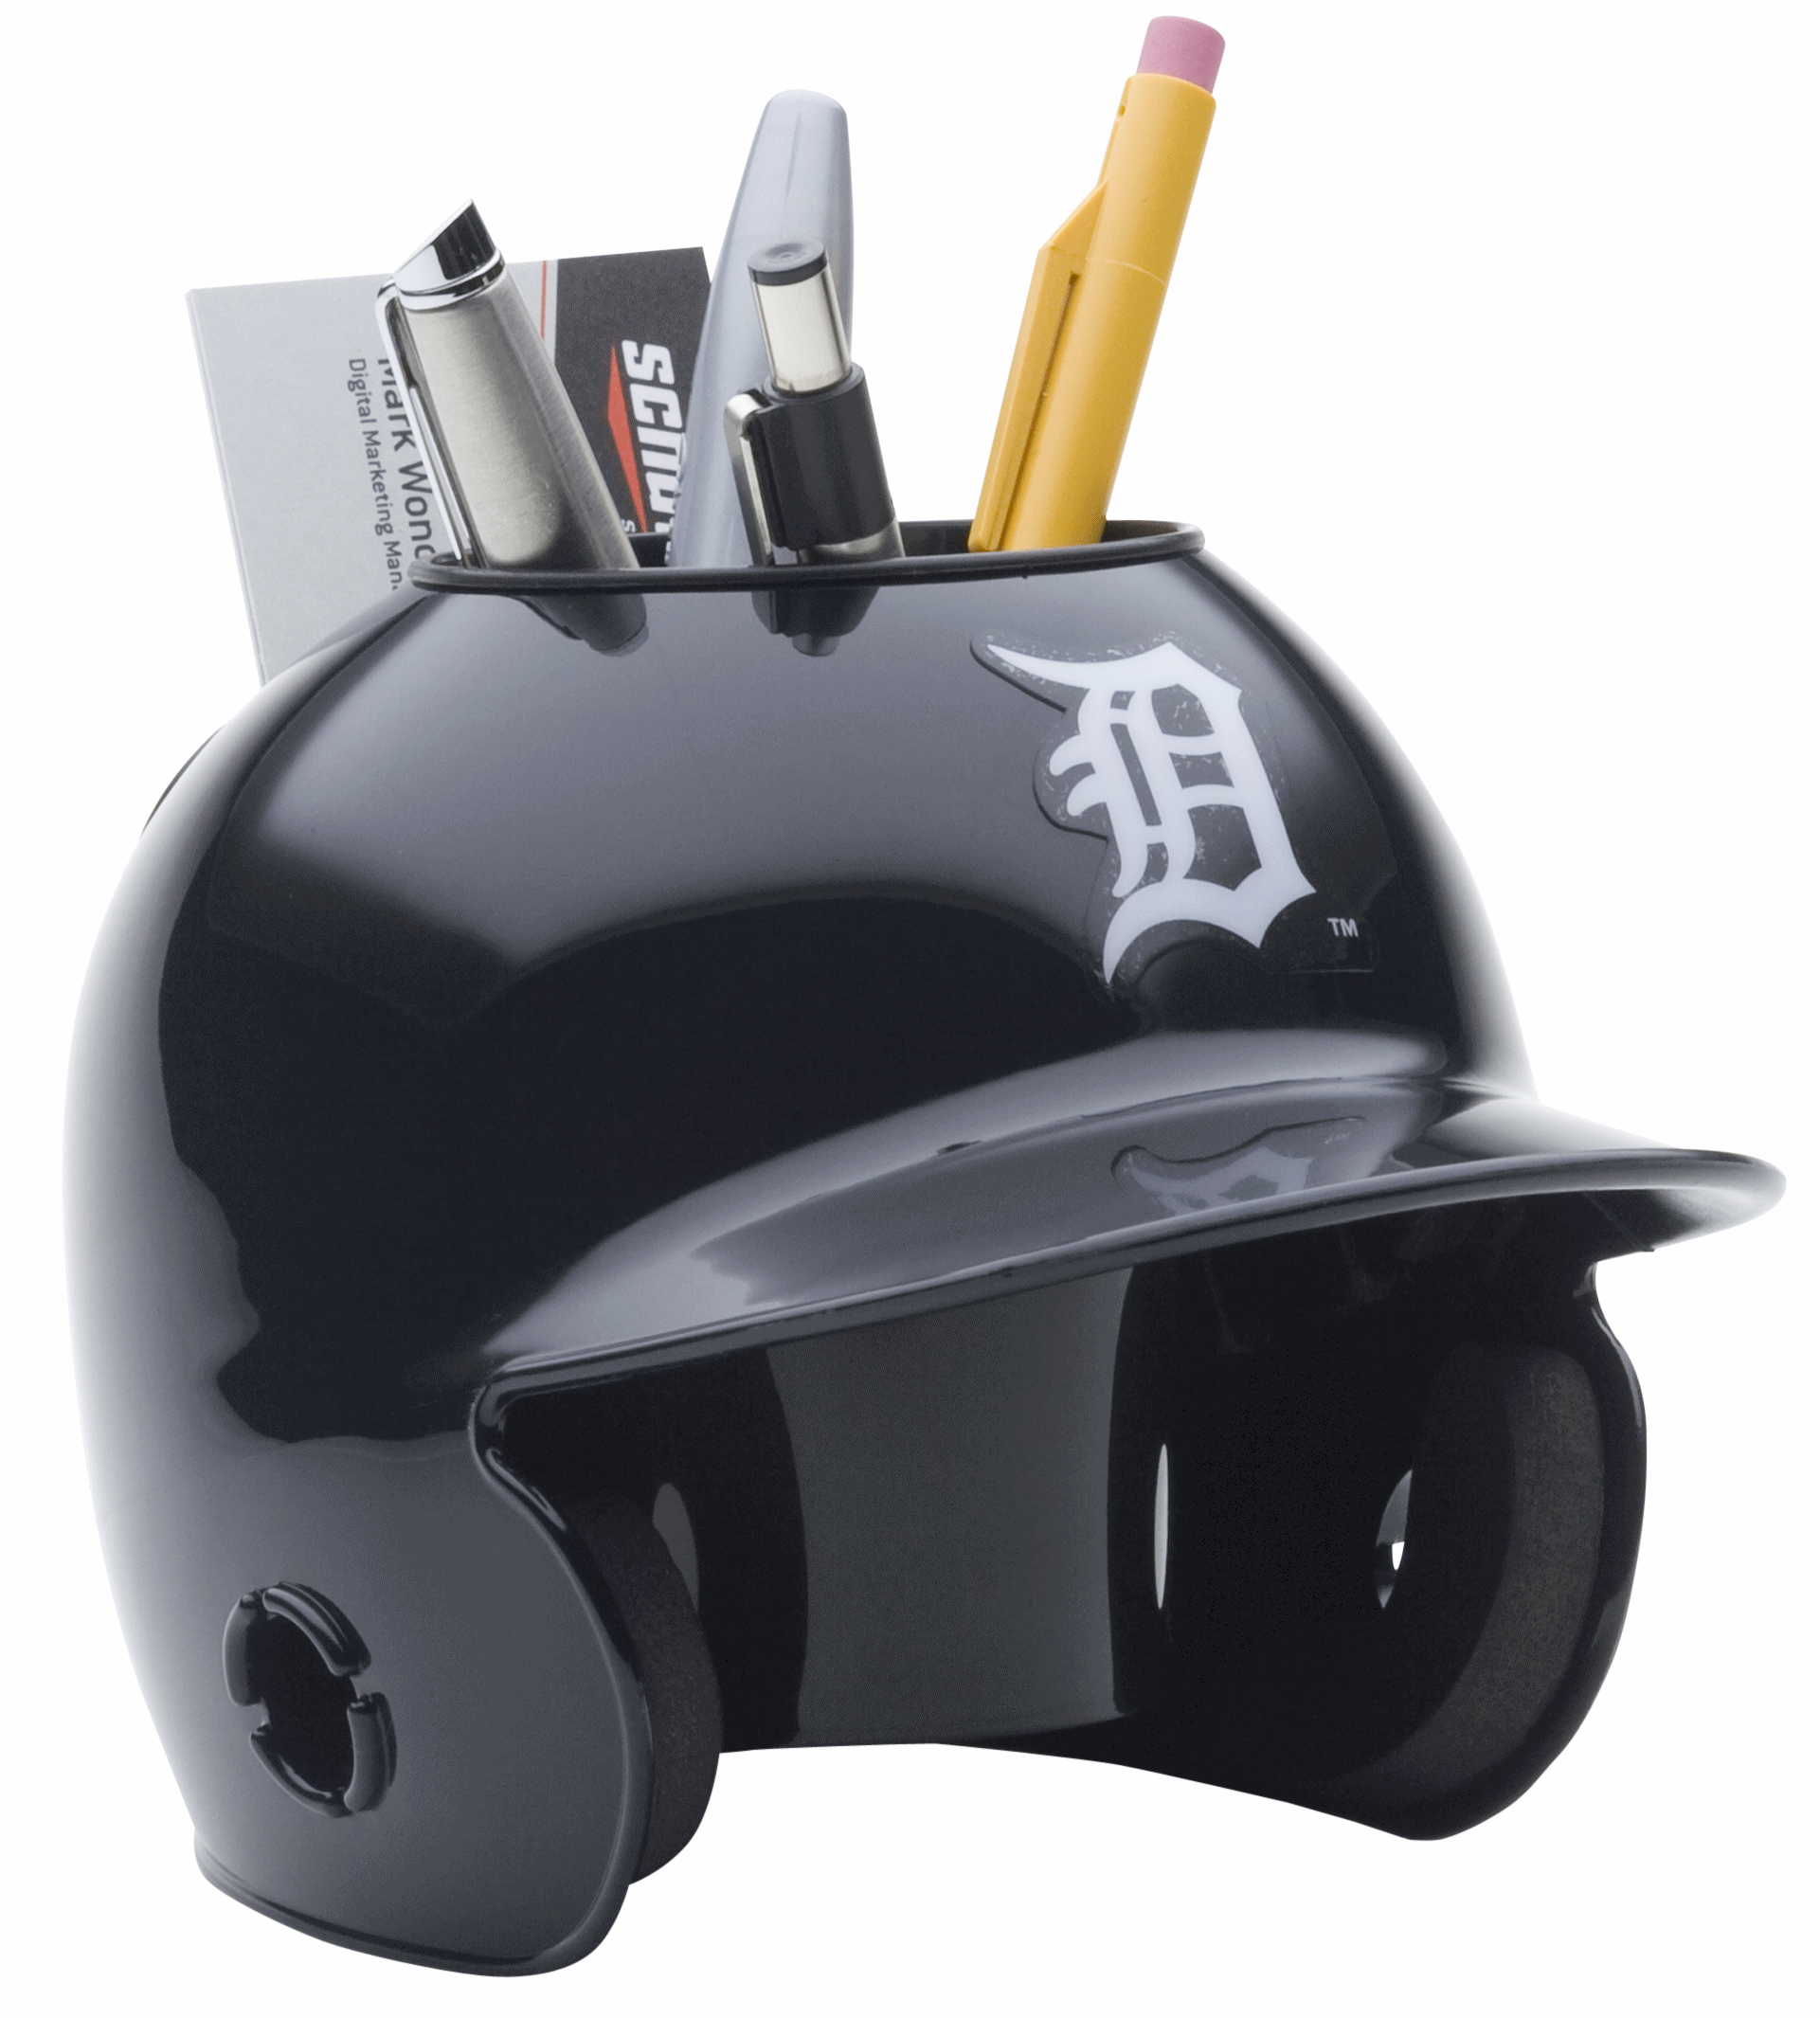 Detroit Tigers Miniature Batters Helmet Desk Caddy